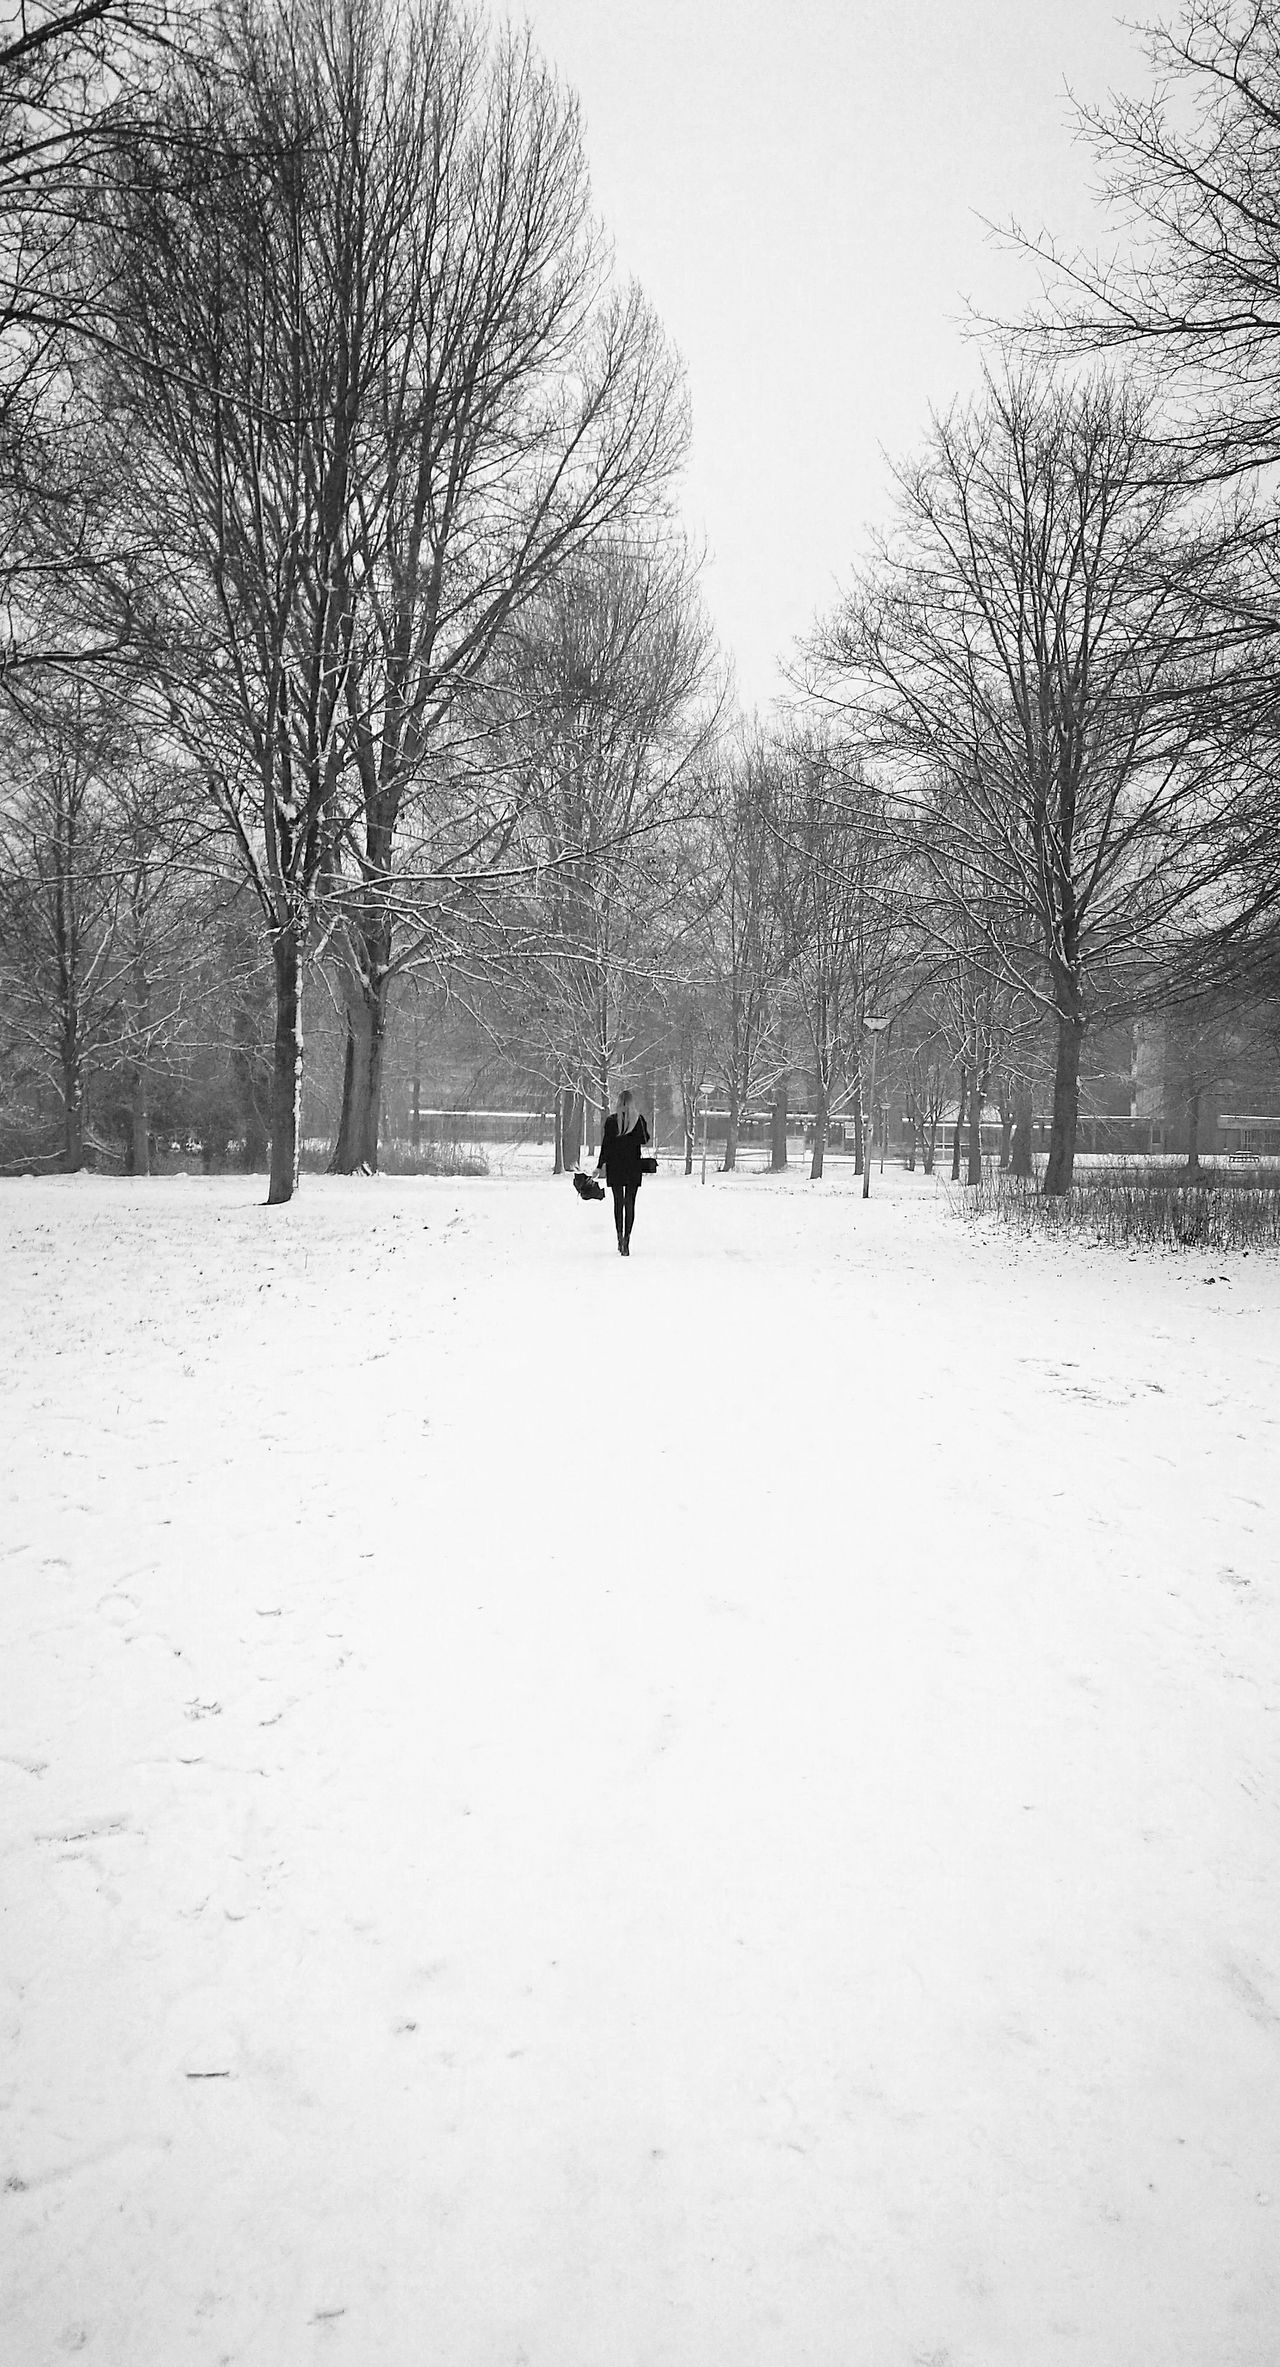 Winter Snow Cold Temperature Tree Nature Snowing Outdoors Silhouette Landscape One Person People Beauty In Nature Day Sky Black And White